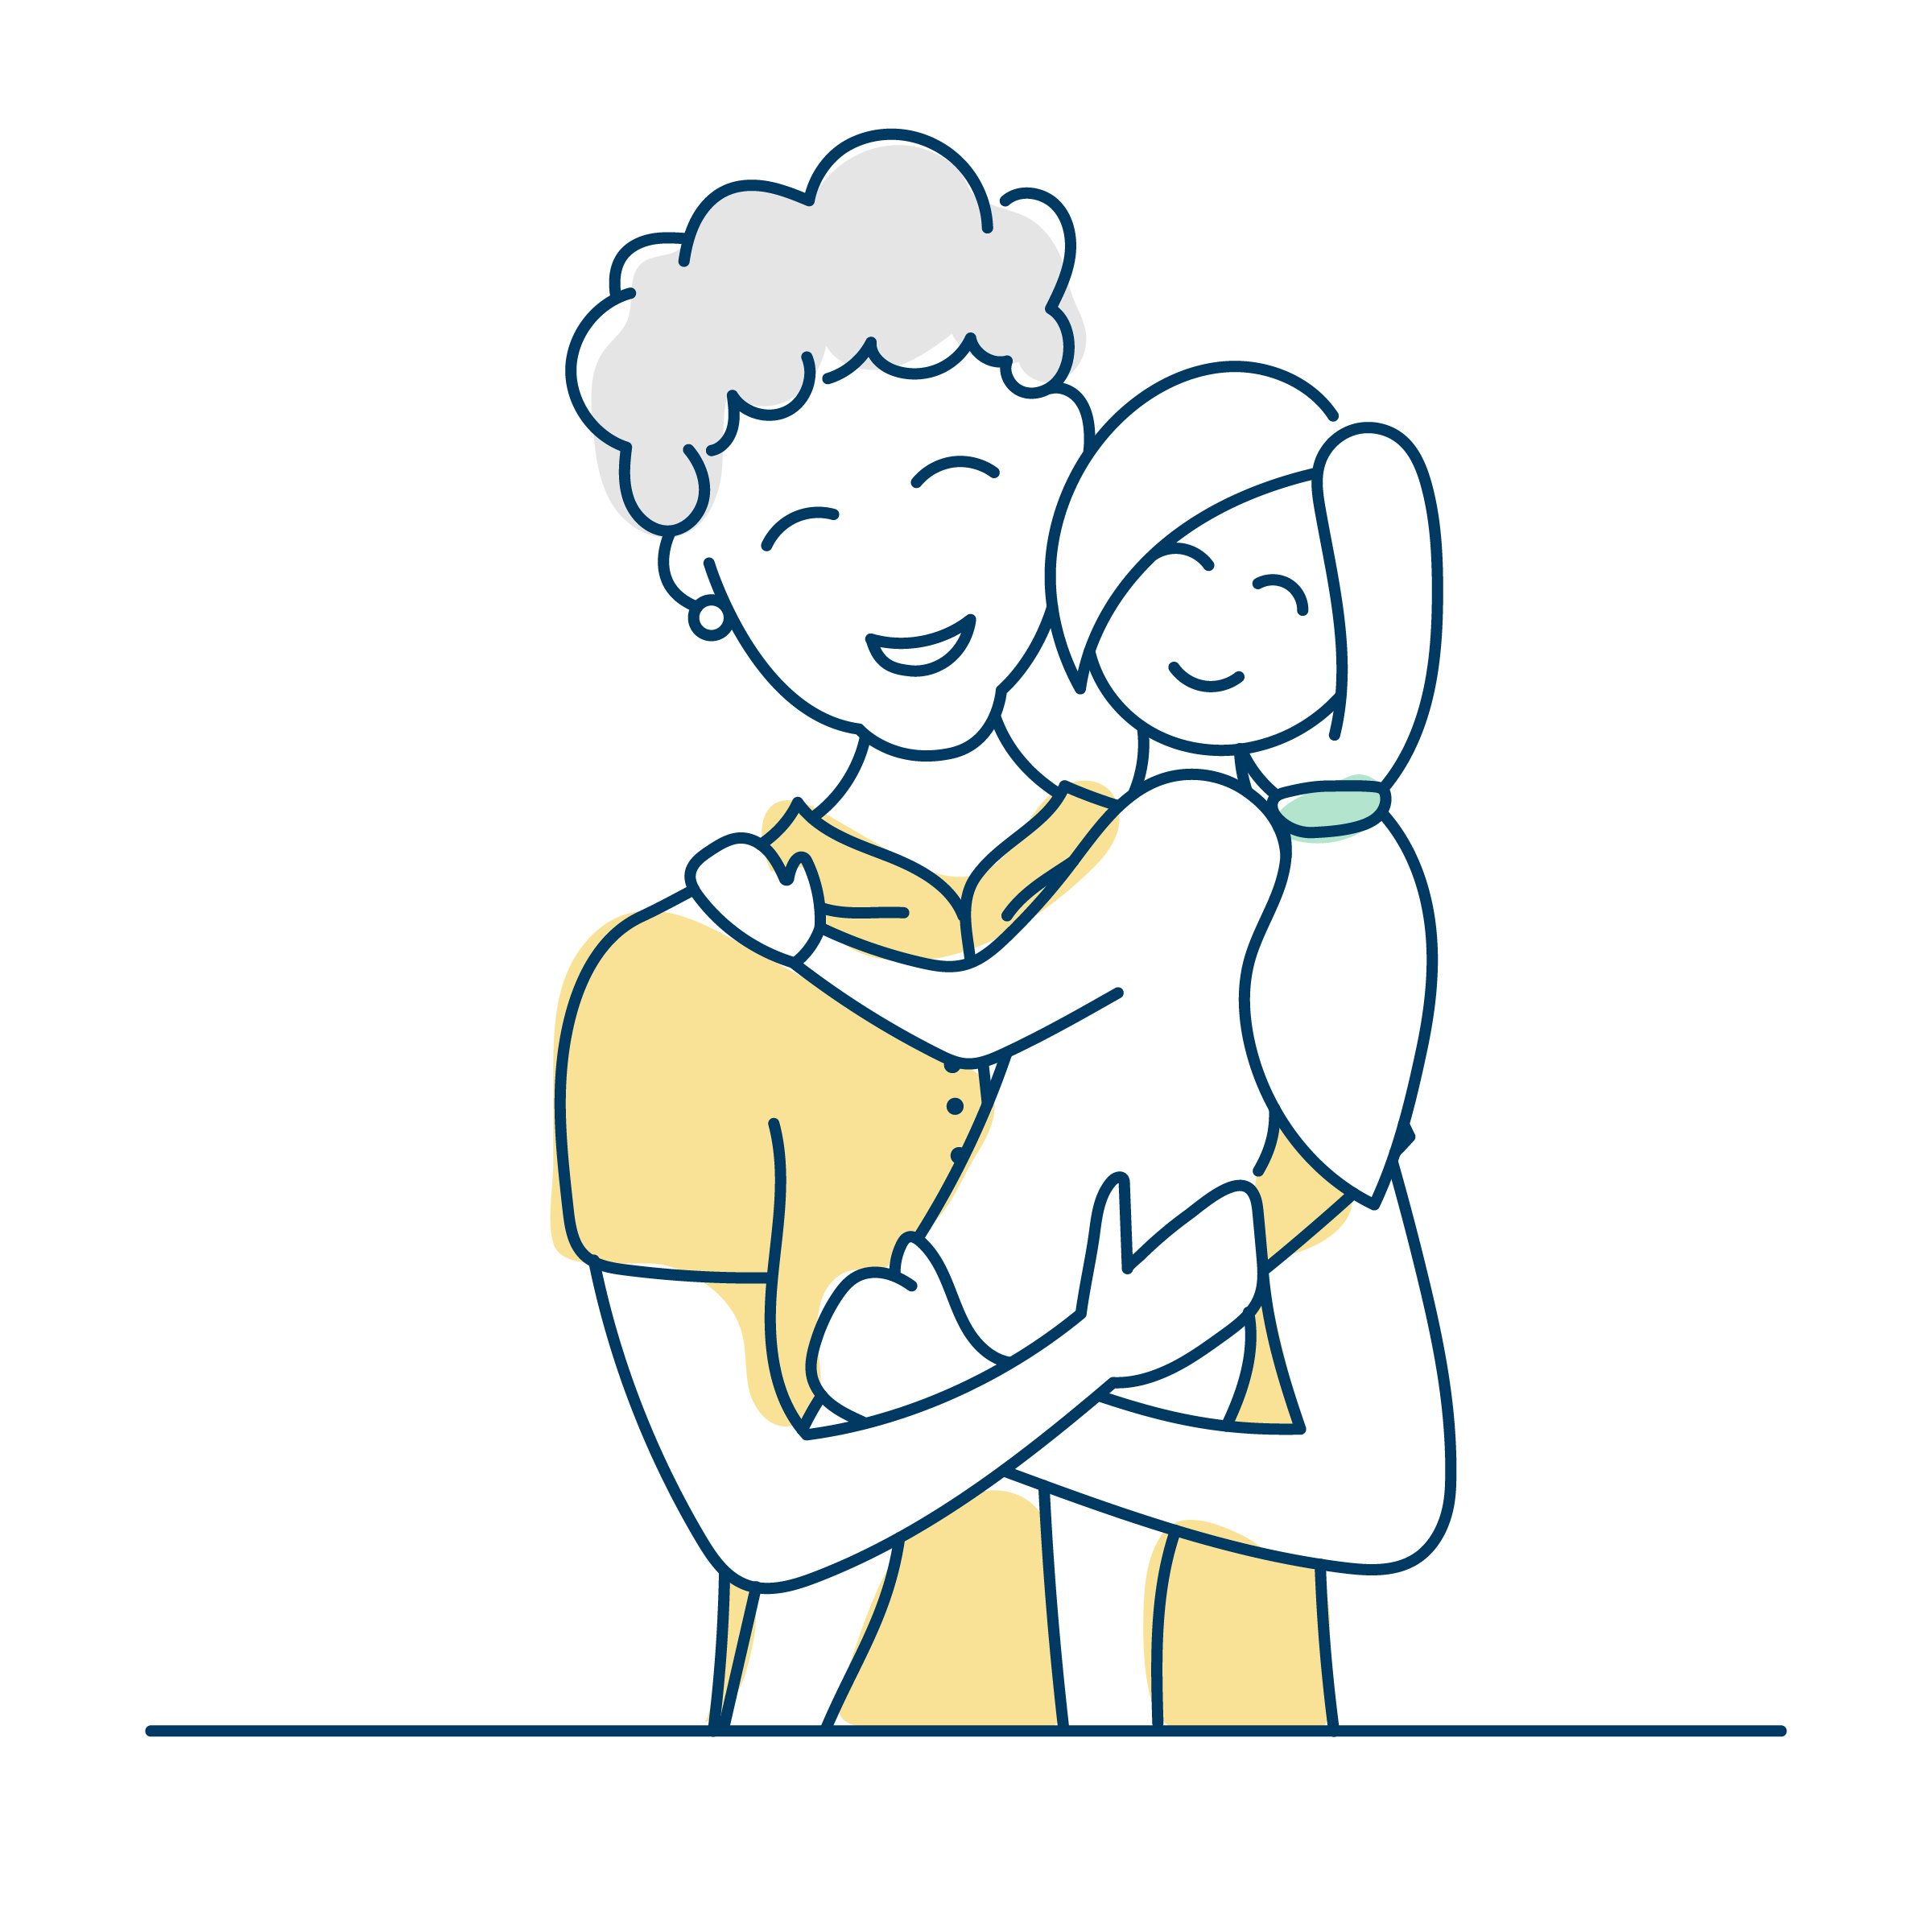 Illustration of woman and child hugging and smiling